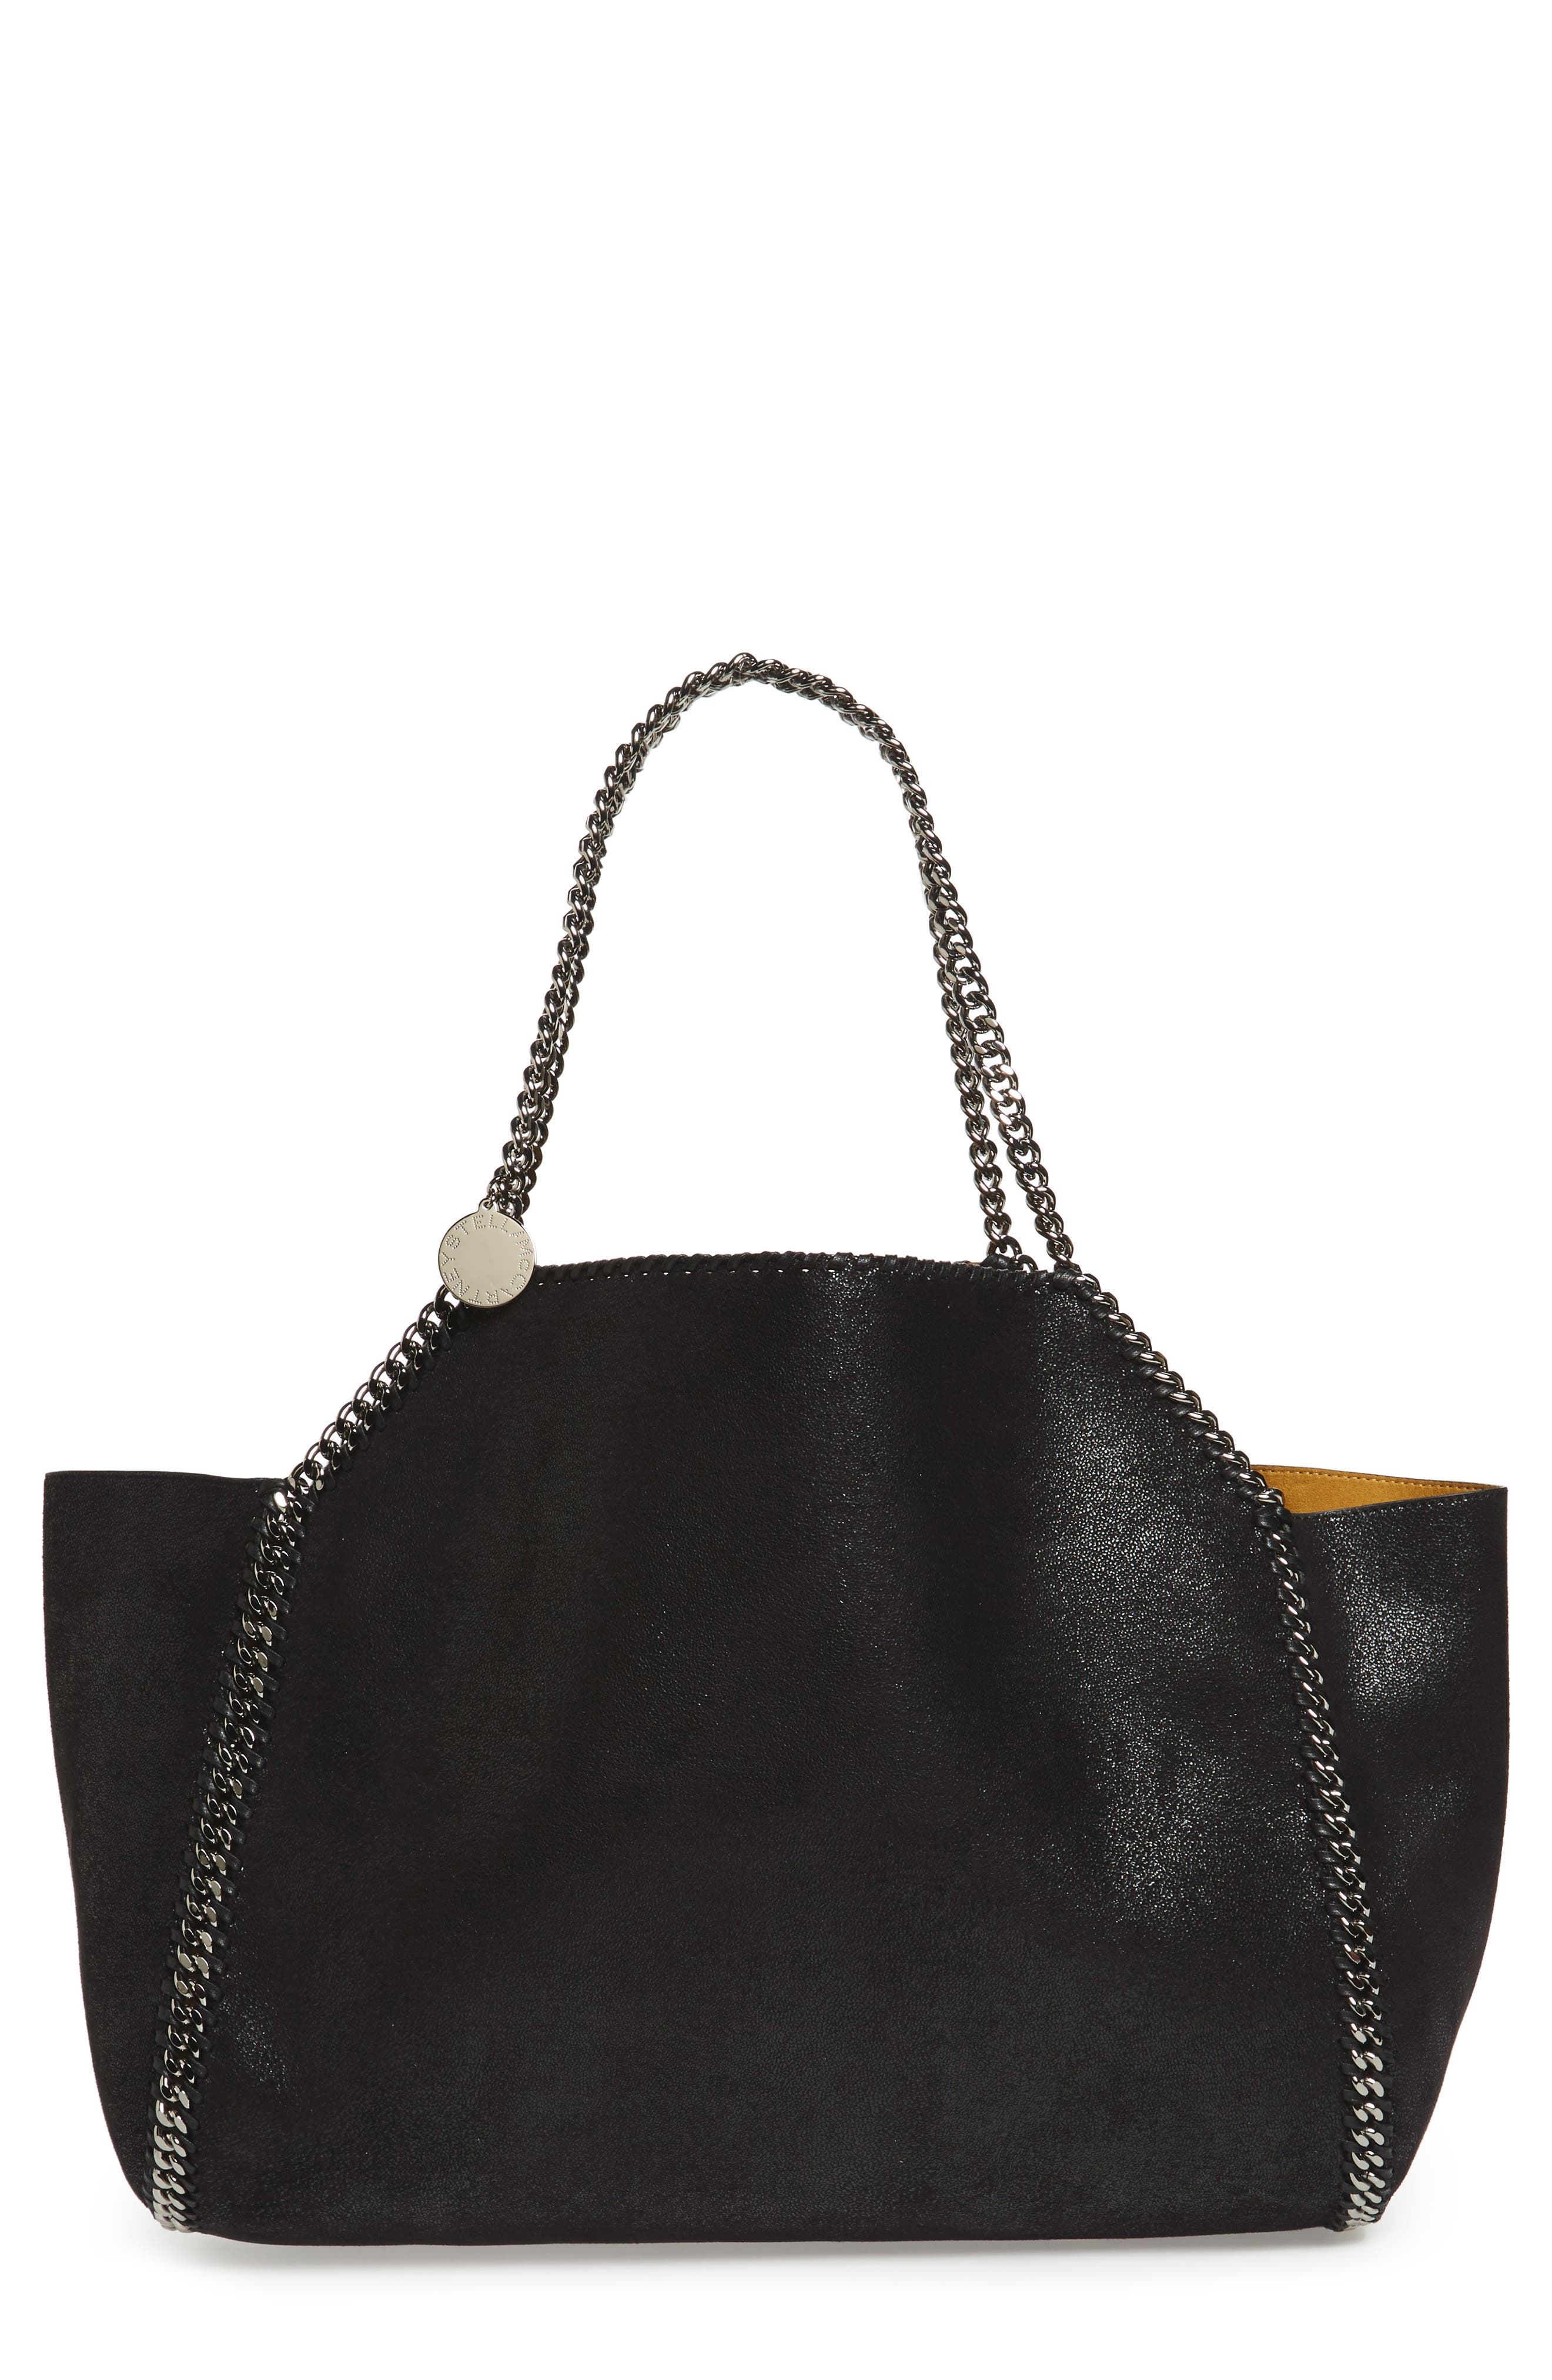 Stella McCartney Reversible Oleo Deer Faux Leather Tote